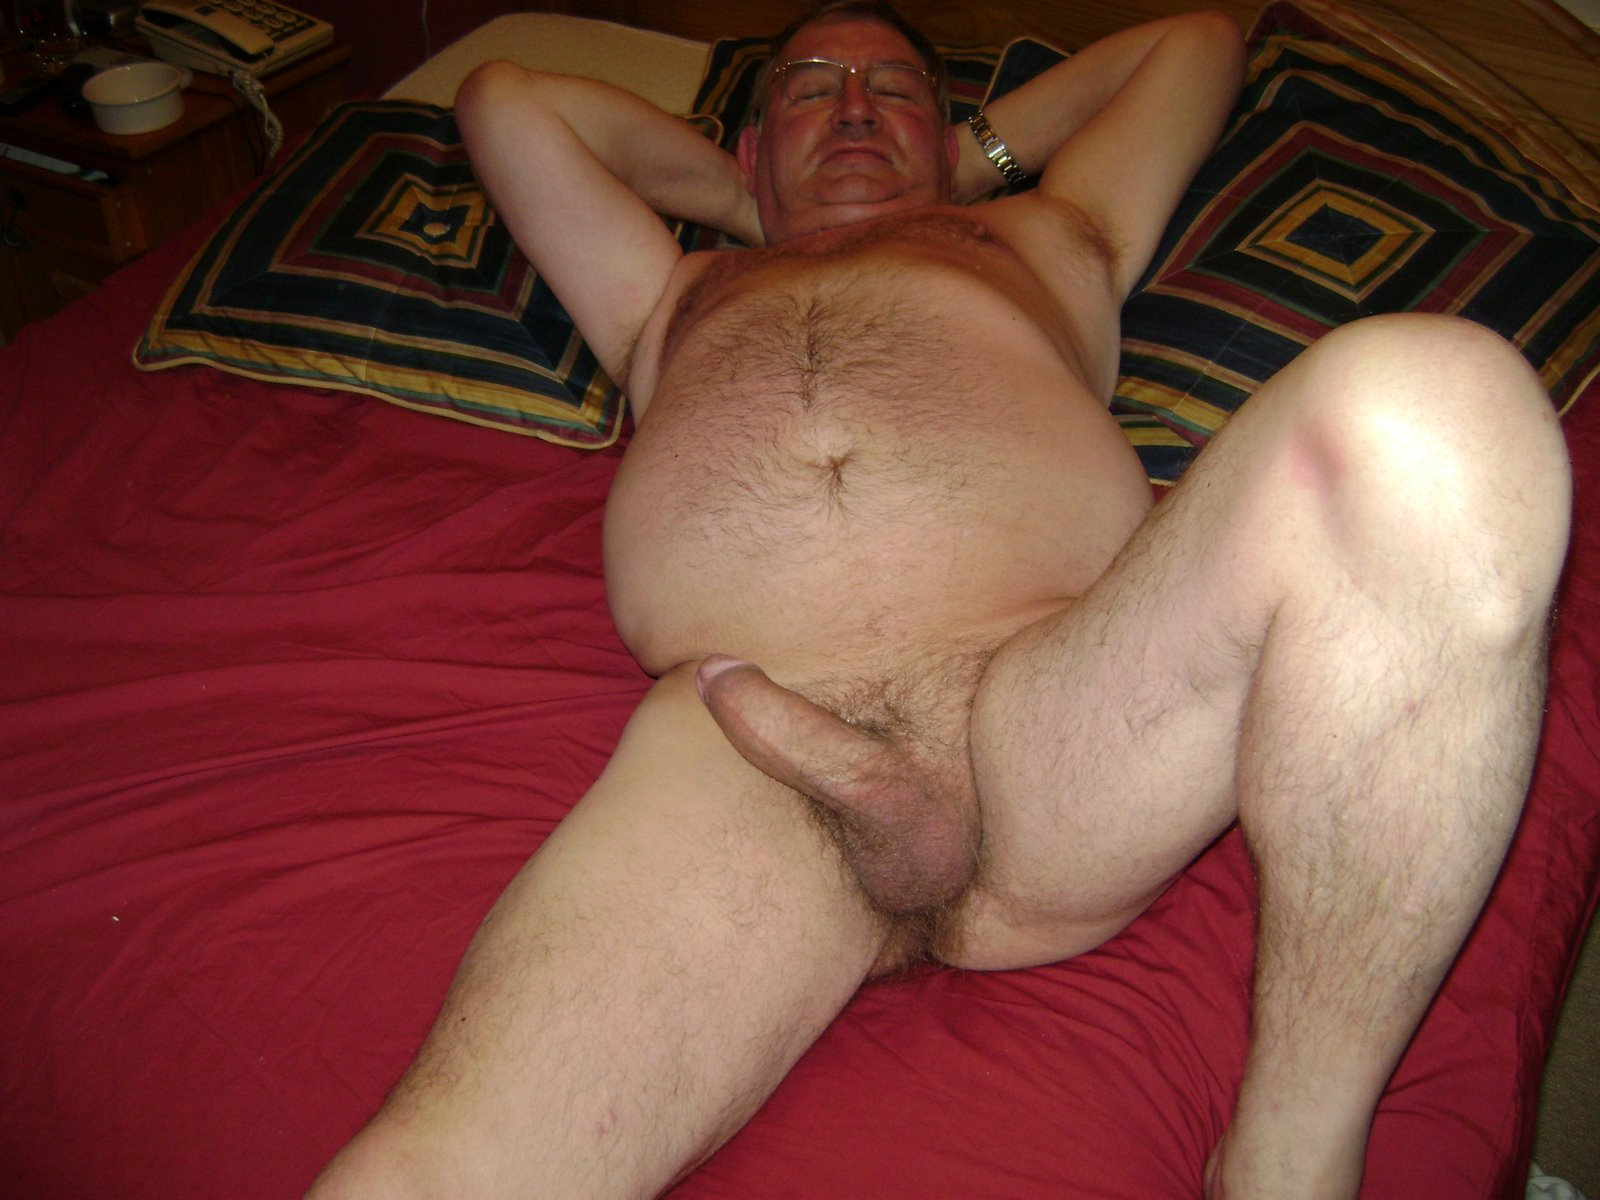 Chubby bears free gallery are